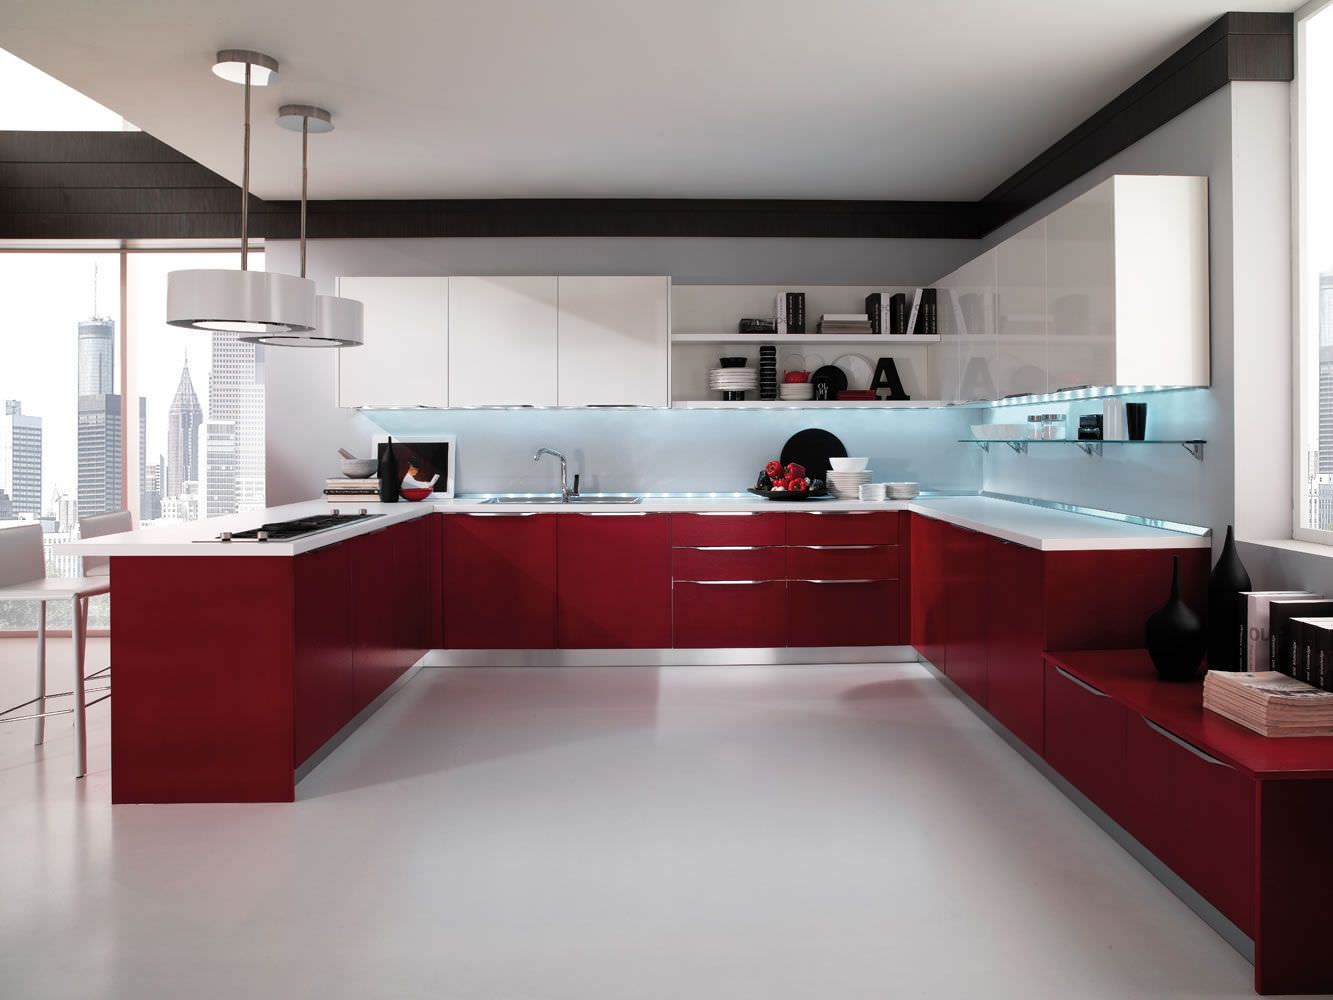 High Gloss Kitchen Cabinets Remodeling Silver Spring Md Contemporary Lacquered Airone Torchetti